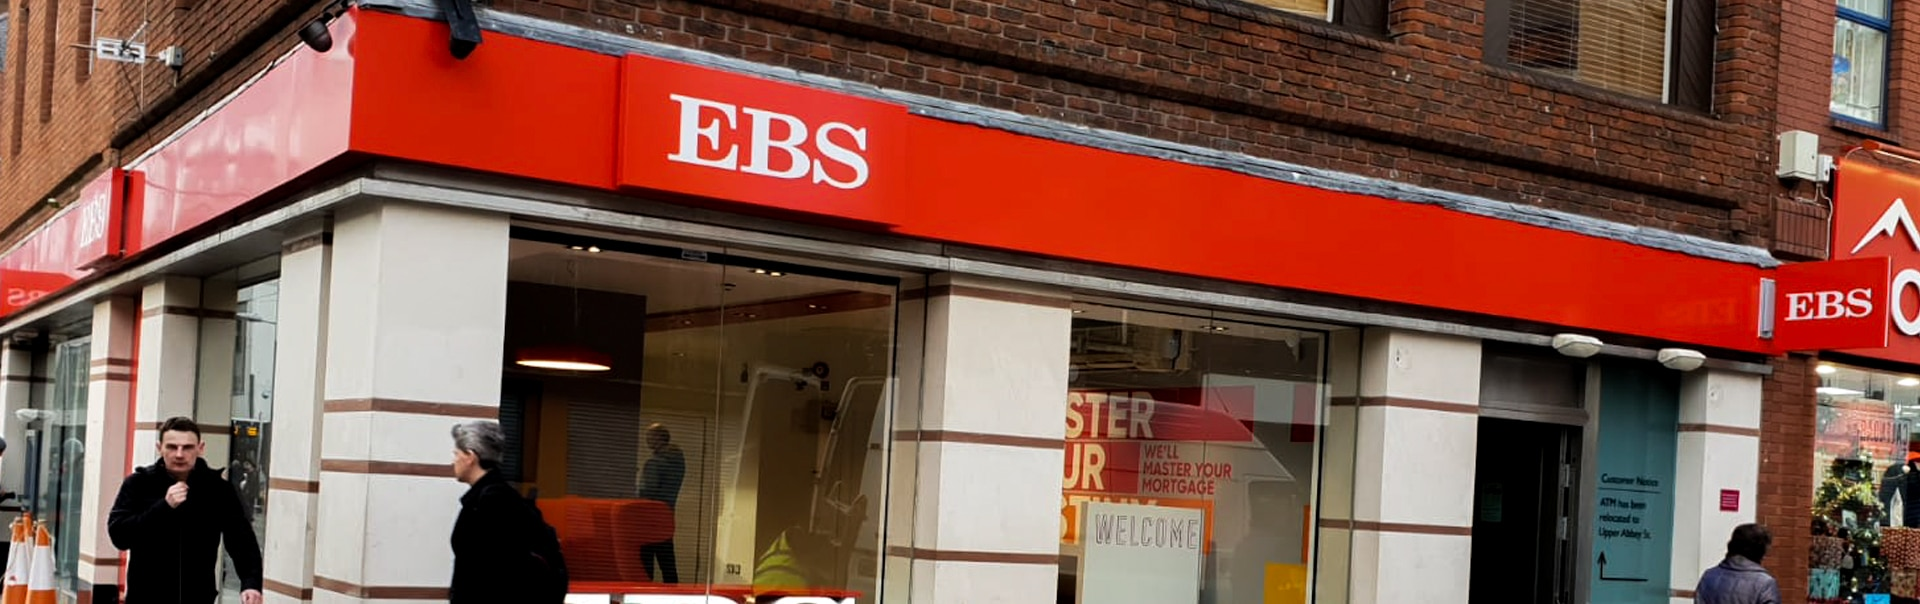 Fascia signage gives EBS high street presence in Dublin 1